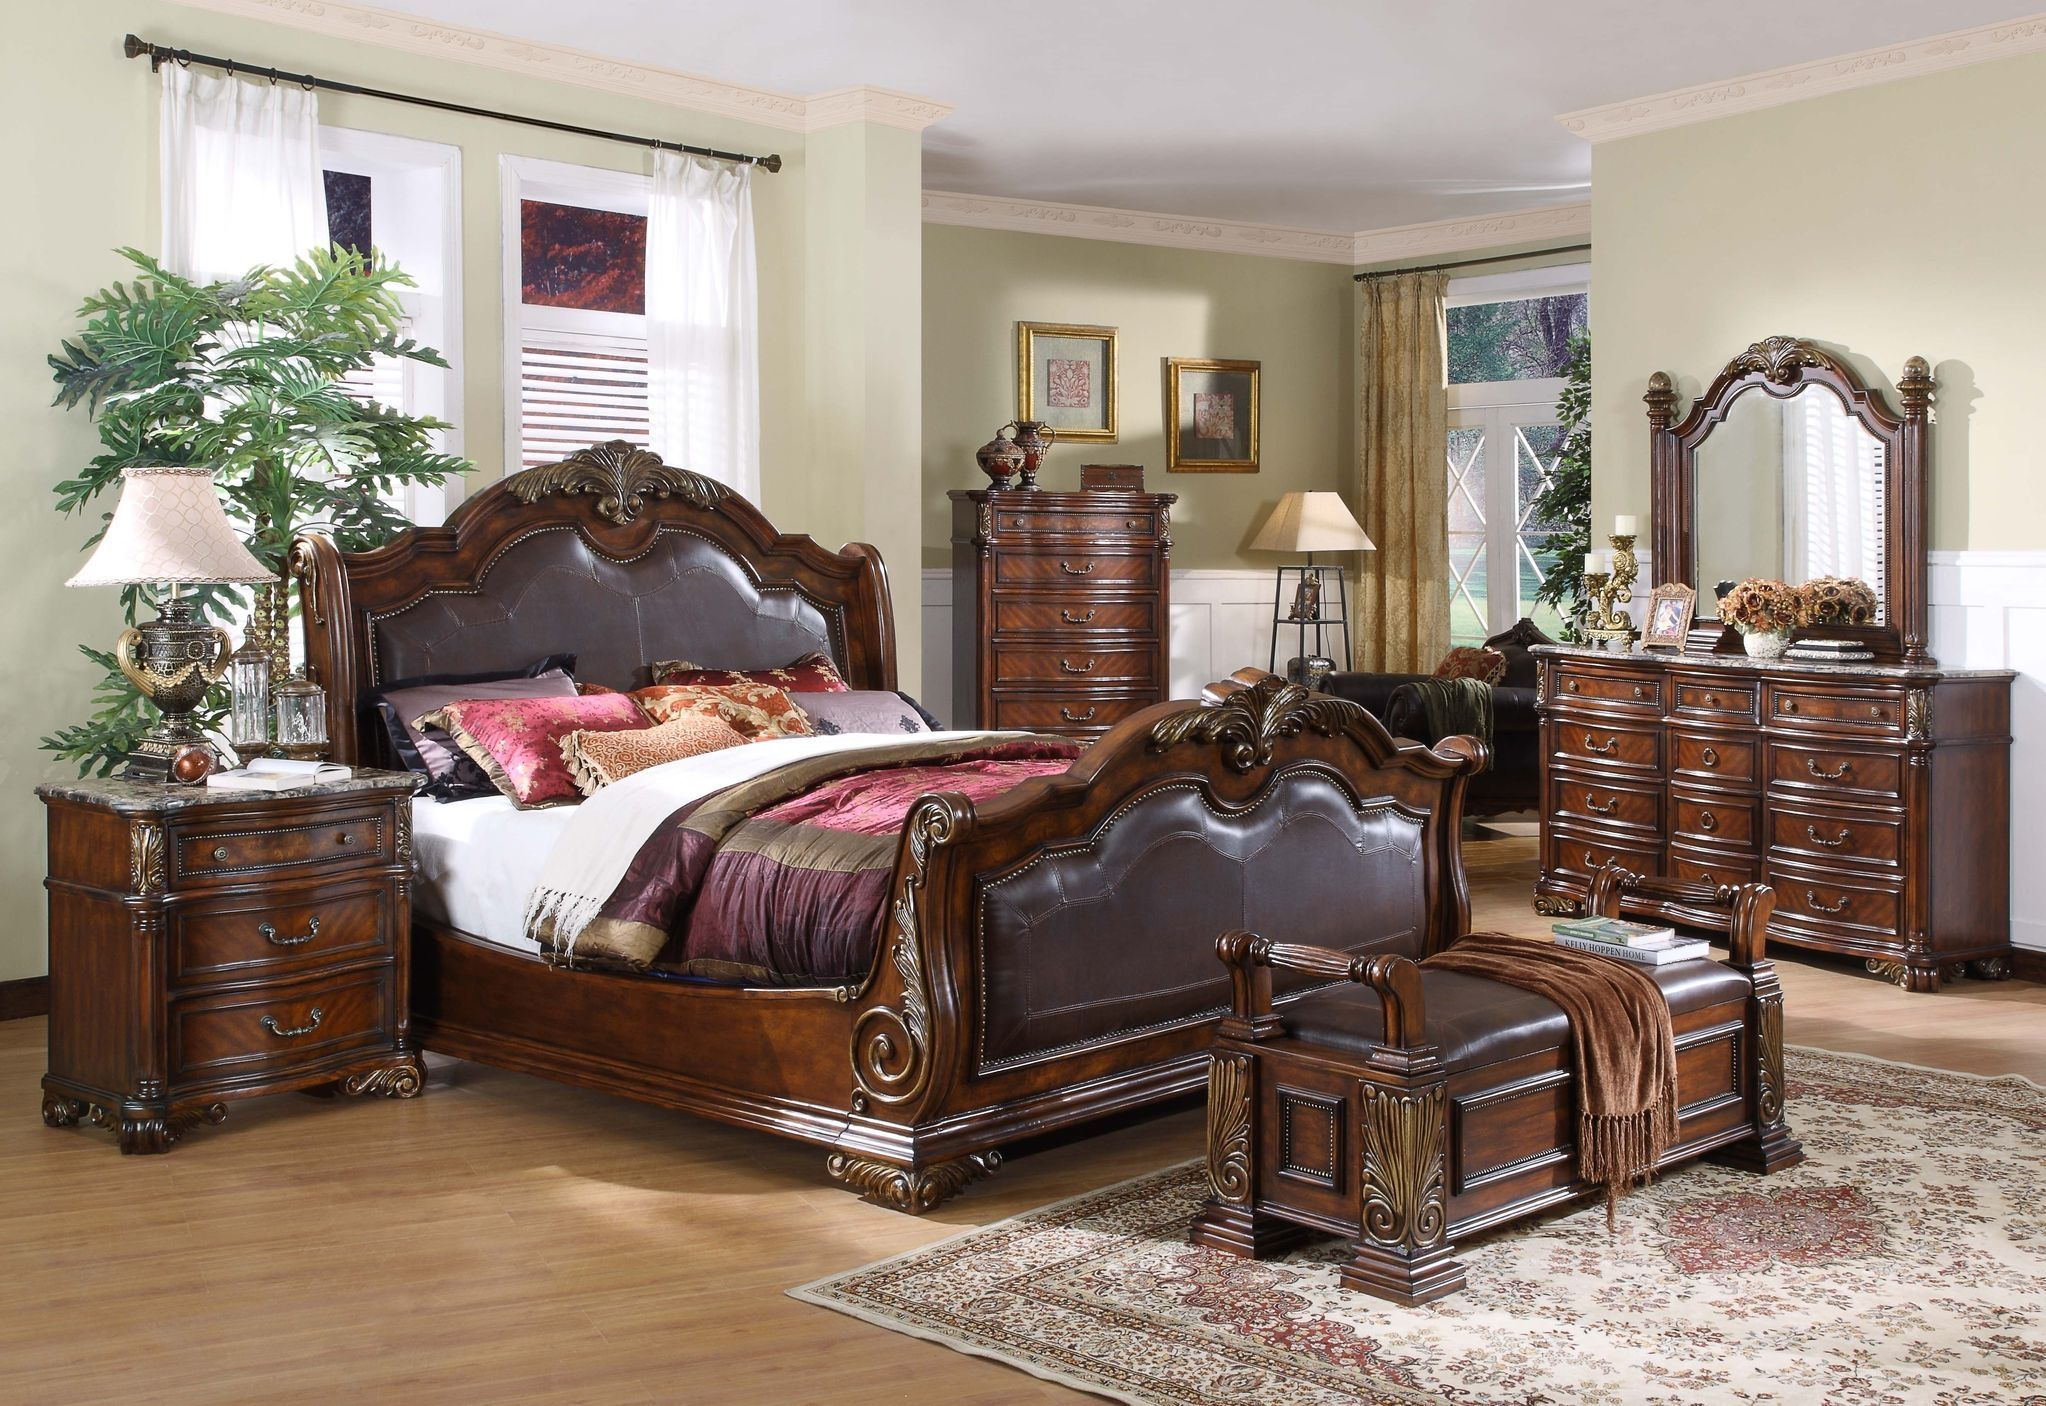 Best 12 Clever Concepts Of How To Build Bedroom Clearance 400 x 300